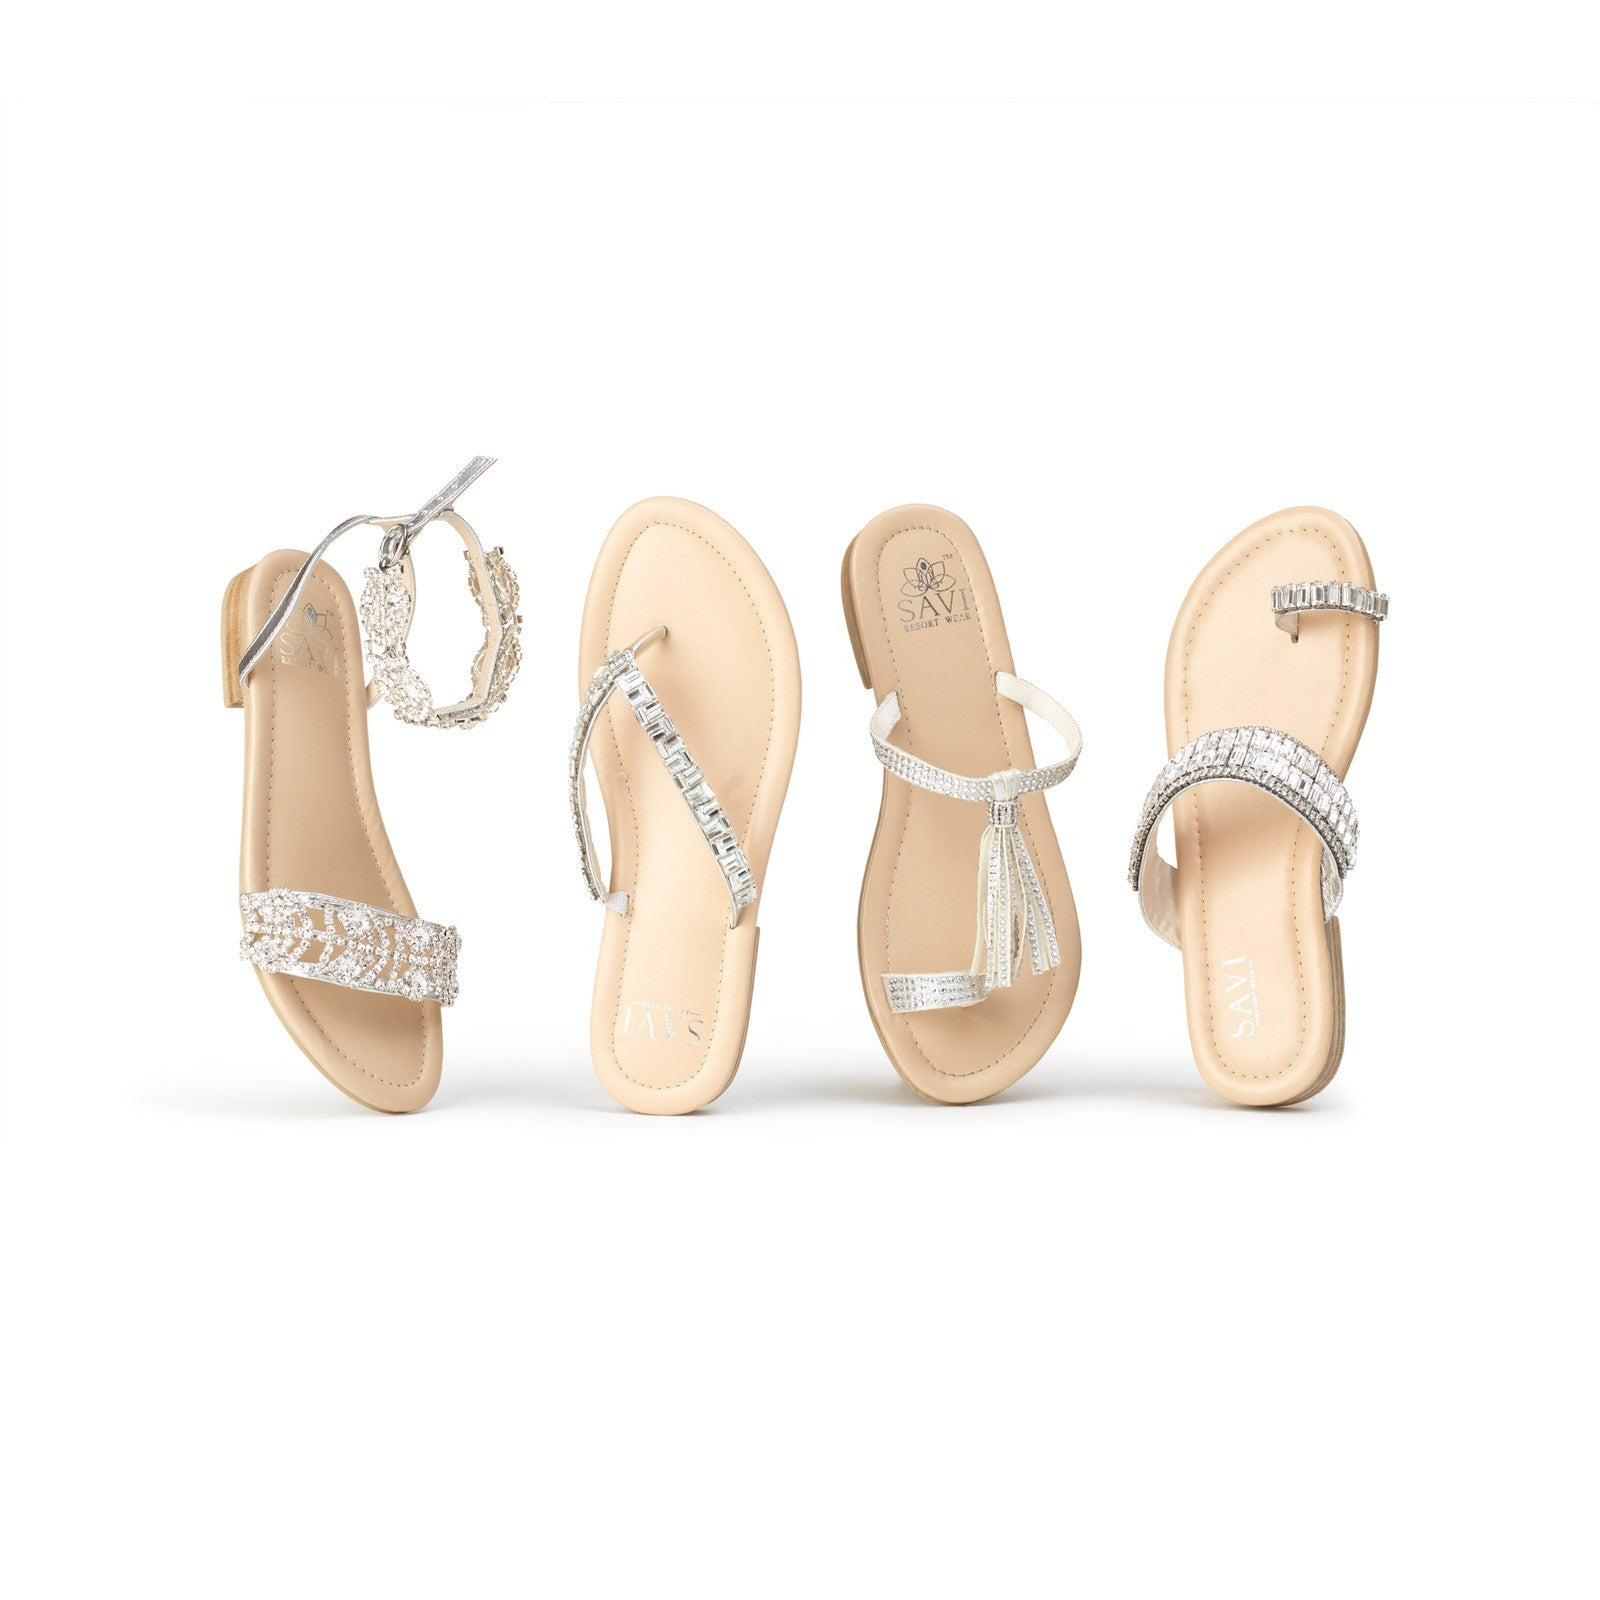 Savi Bridal Flats Clear collection - leather flats with padded cushioning for comfort. Let your inner sparkle shine